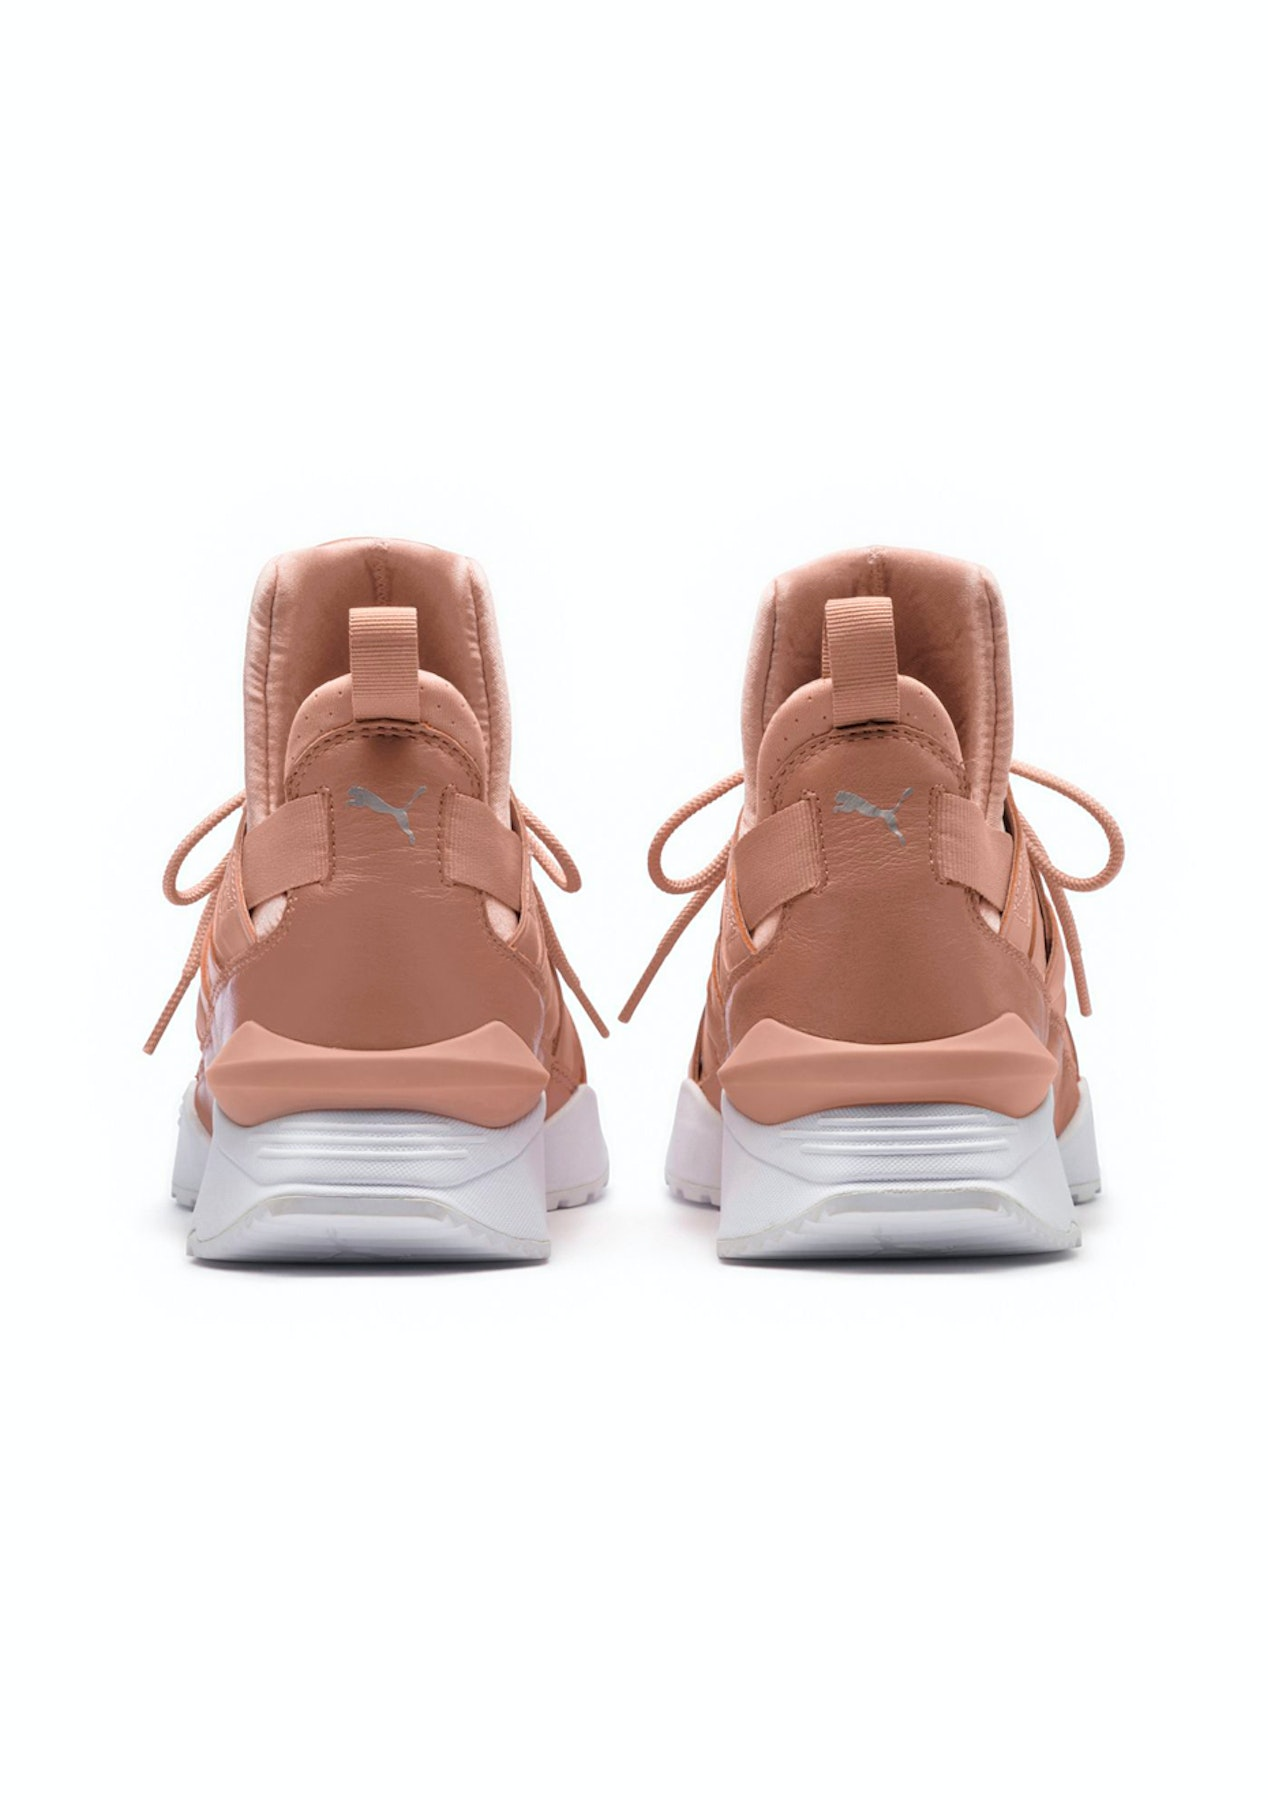 0dd3521756c04a Puma Womens - Muse Echo Satin Ep Peach - Puma Womens   Kids Up to 60% Off -  Onceit